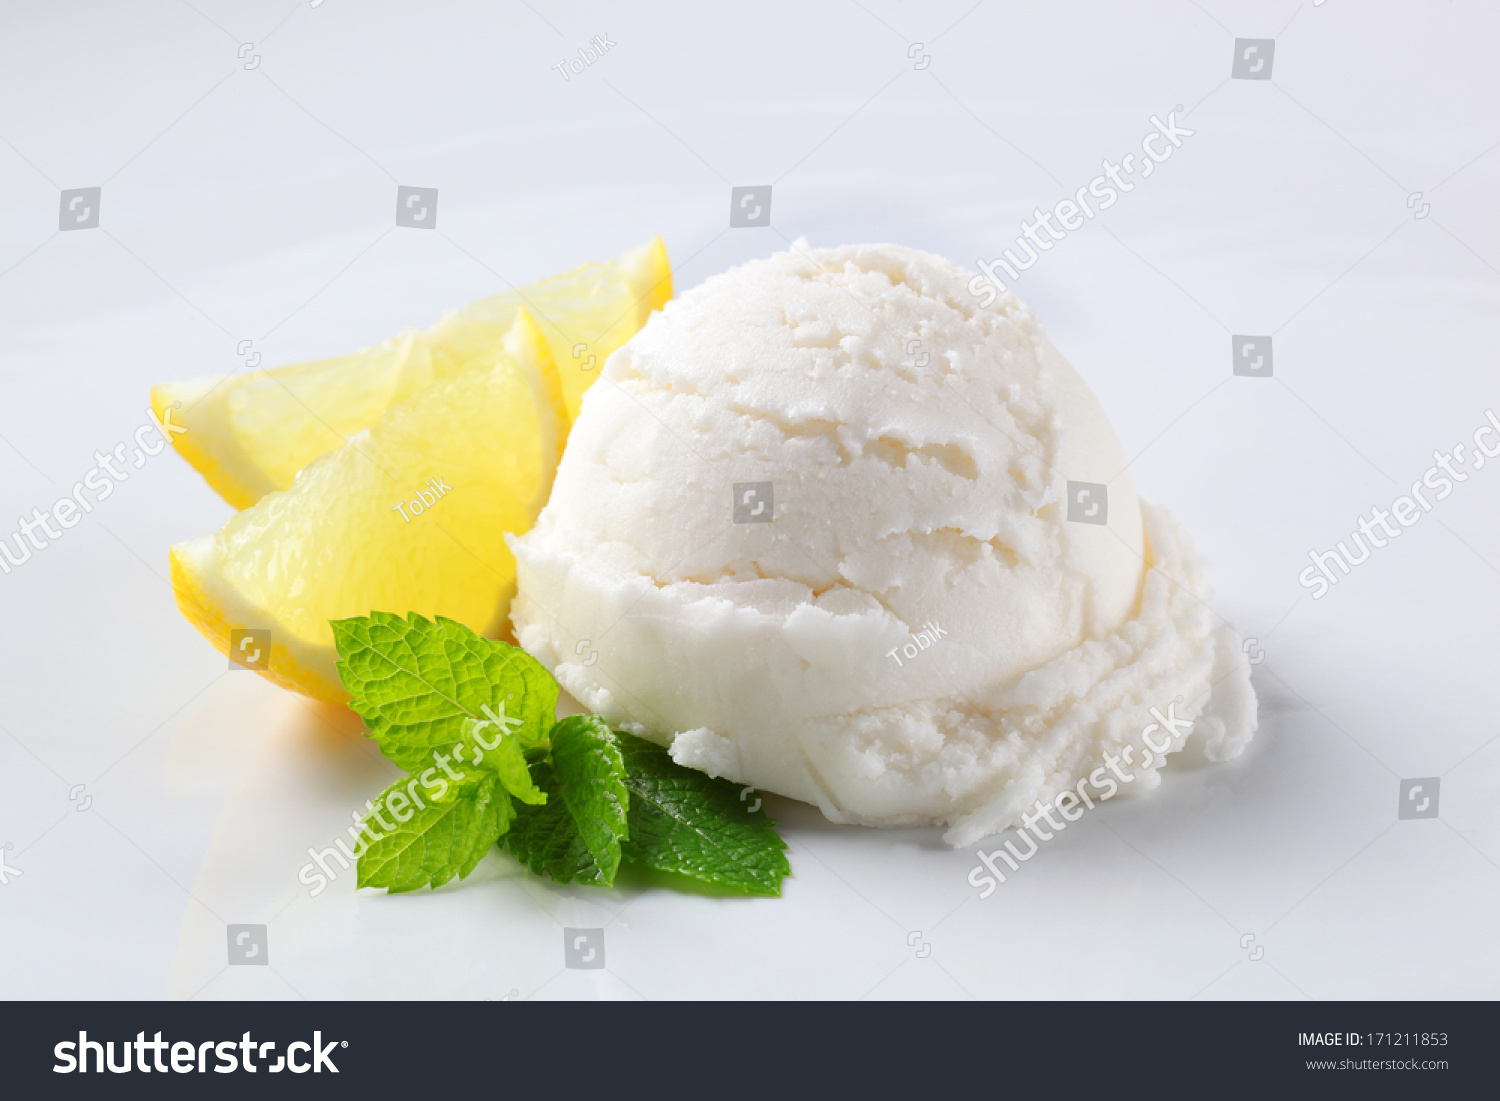 Scoop Lemon Ice Cream Fresh Berries Stock Photo 171211853 ...